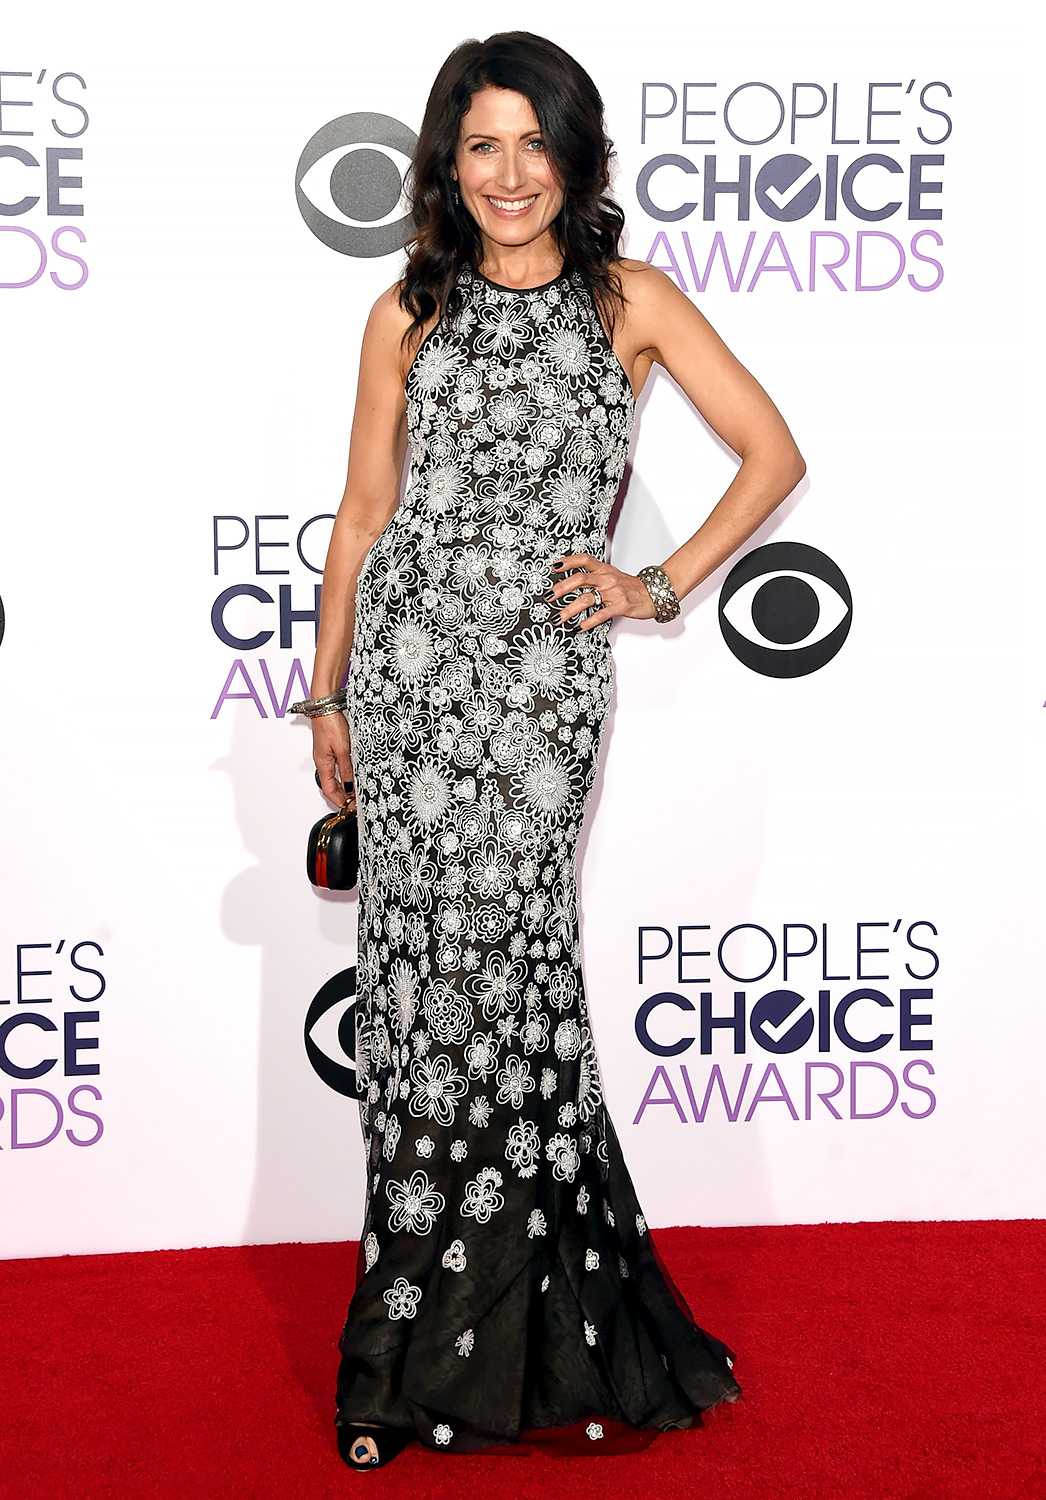 Lisa Edelstein in a sleeveless Naeem Khan Resort 2015 black & white floral beaded trumpet gown which she styled with a small clutch and bangles.